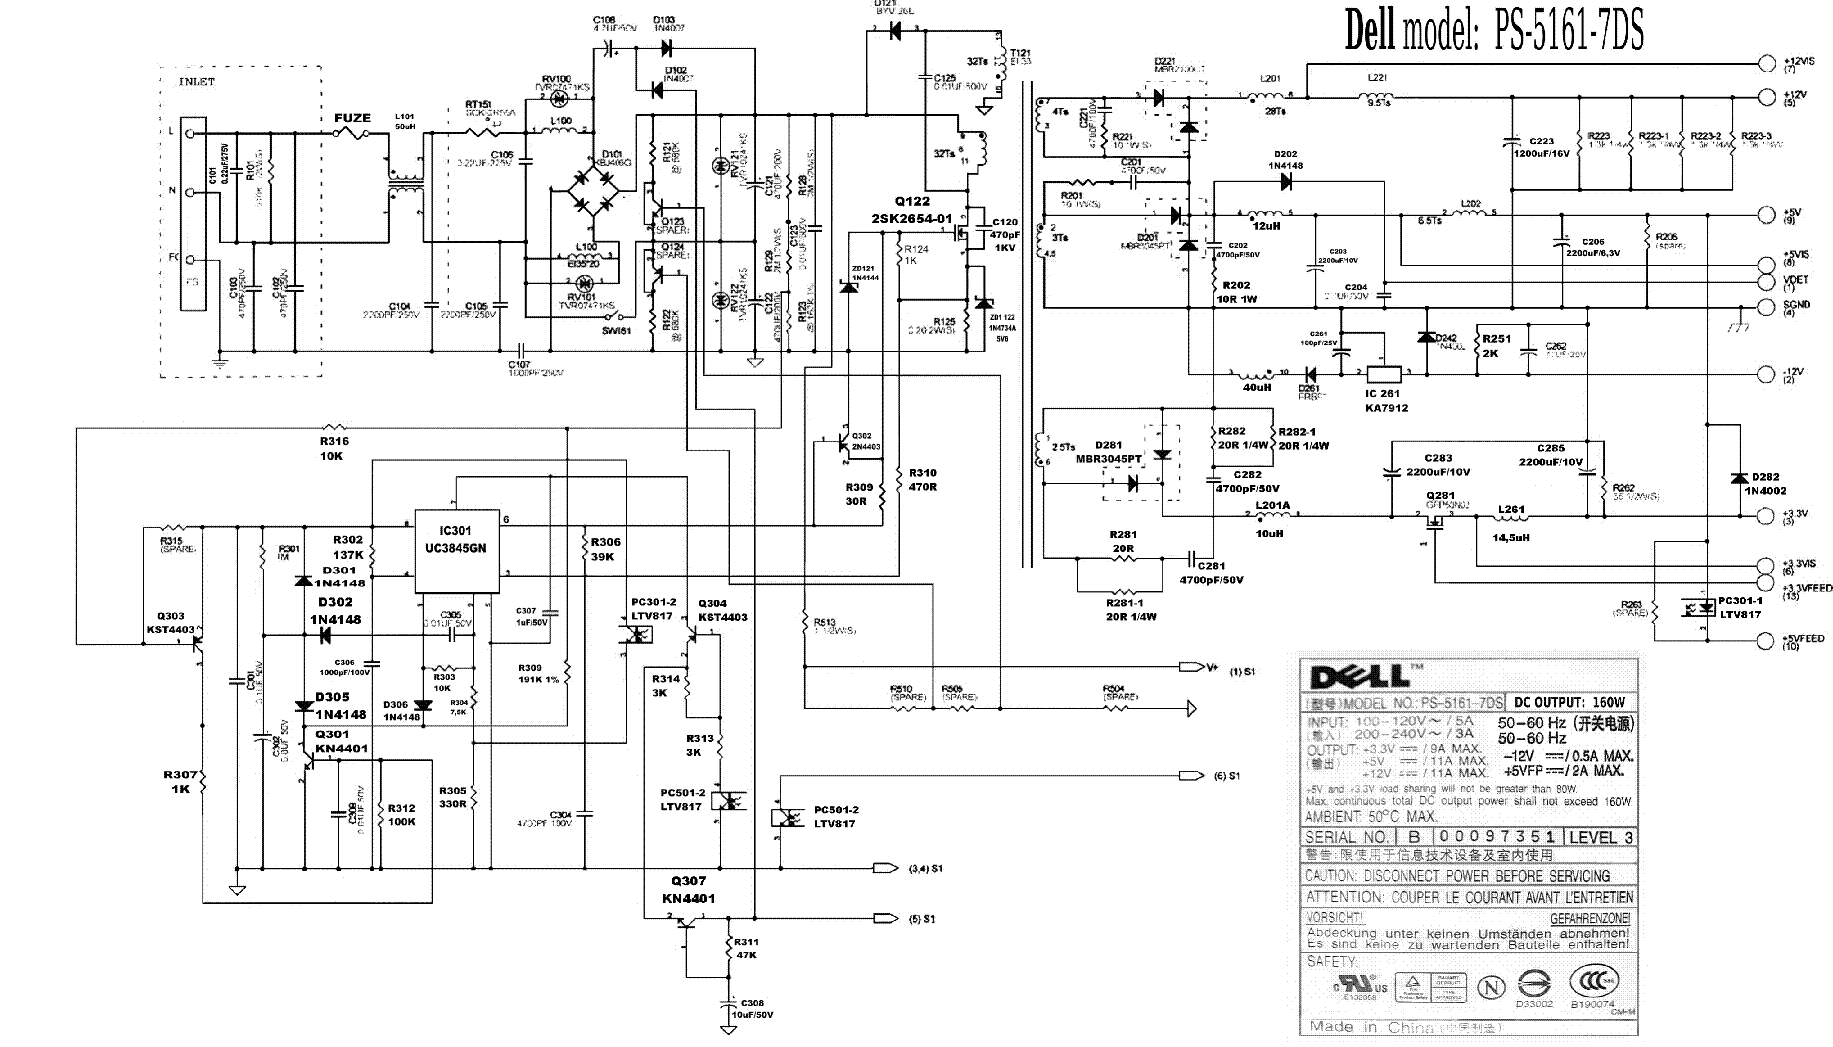 Dell Ps 5161 7ds Power Supply Schematic Service Manual